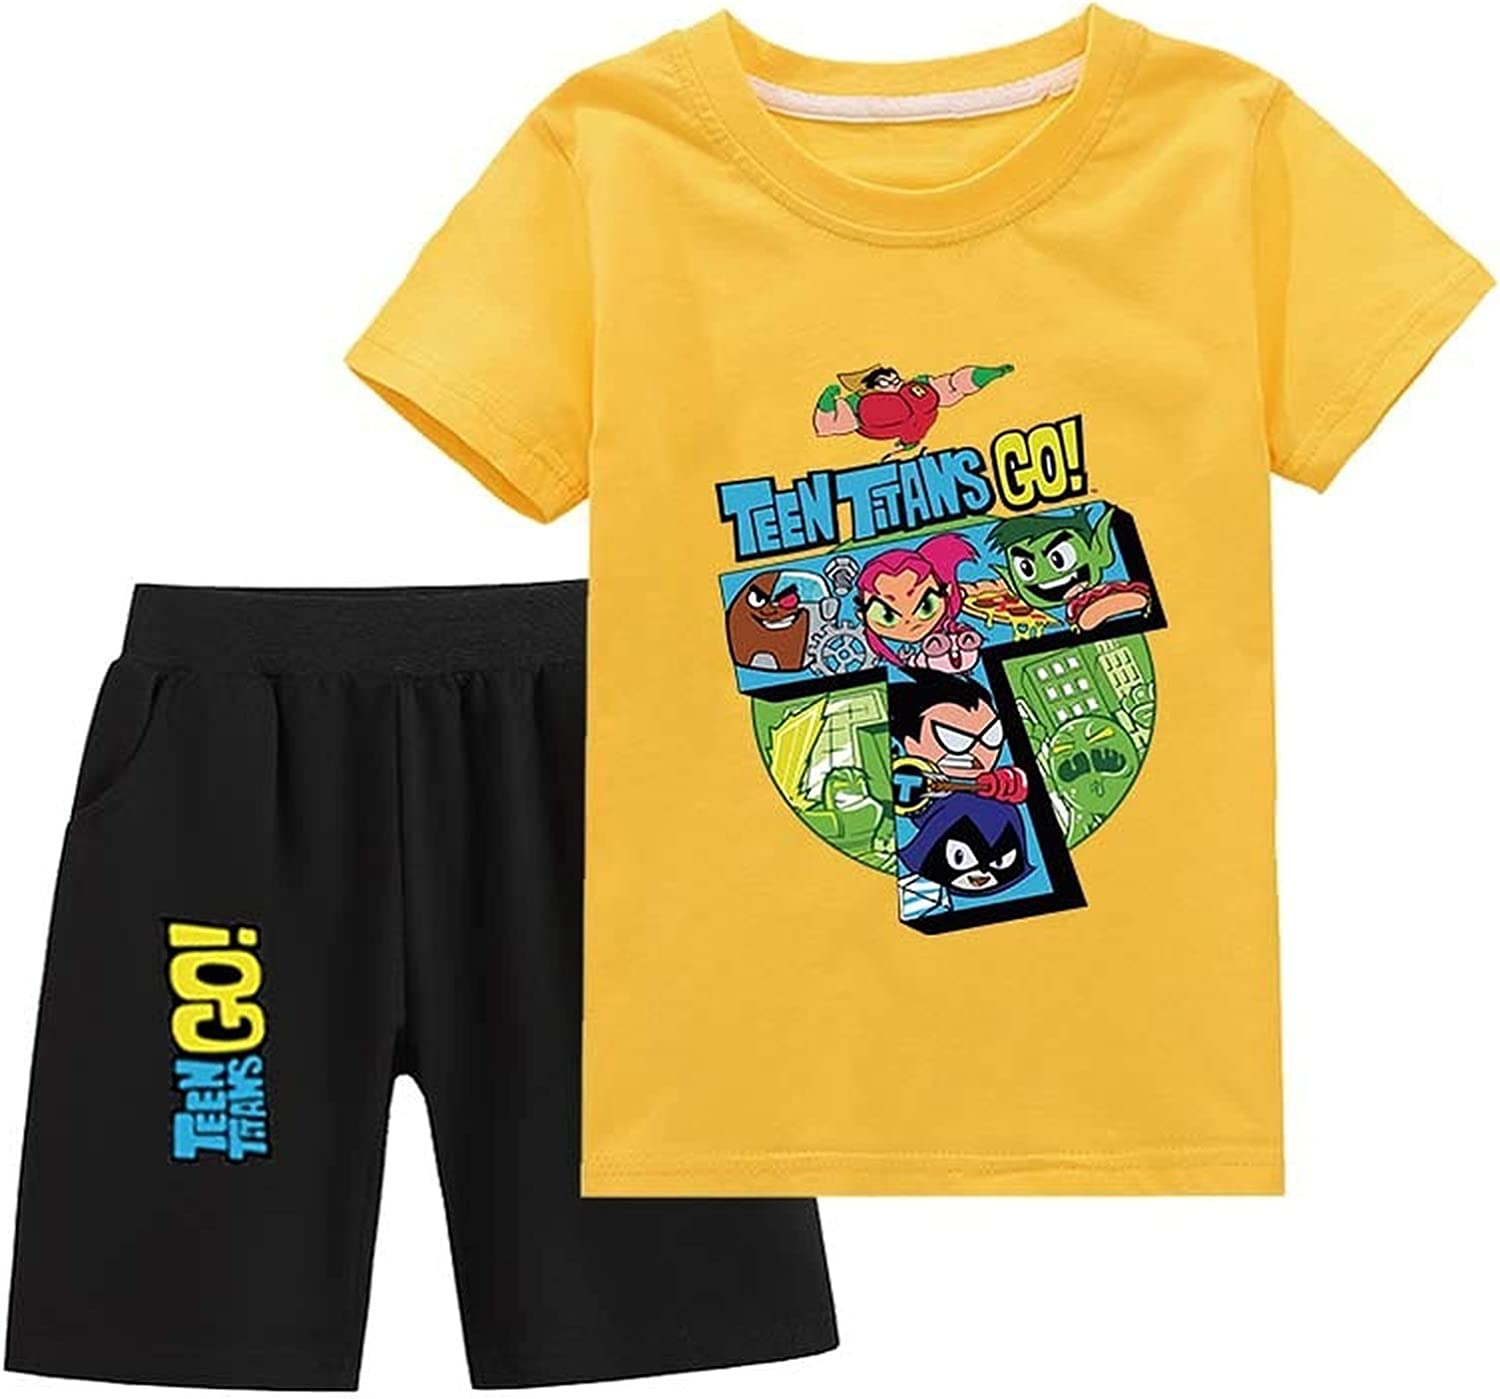 Teen Titans Go! Boys and Girls Clothes Cotton Short-Sleeved T-Shirts and Shorts Summer Clothing Suits Shorts Suits (Yellow,110)